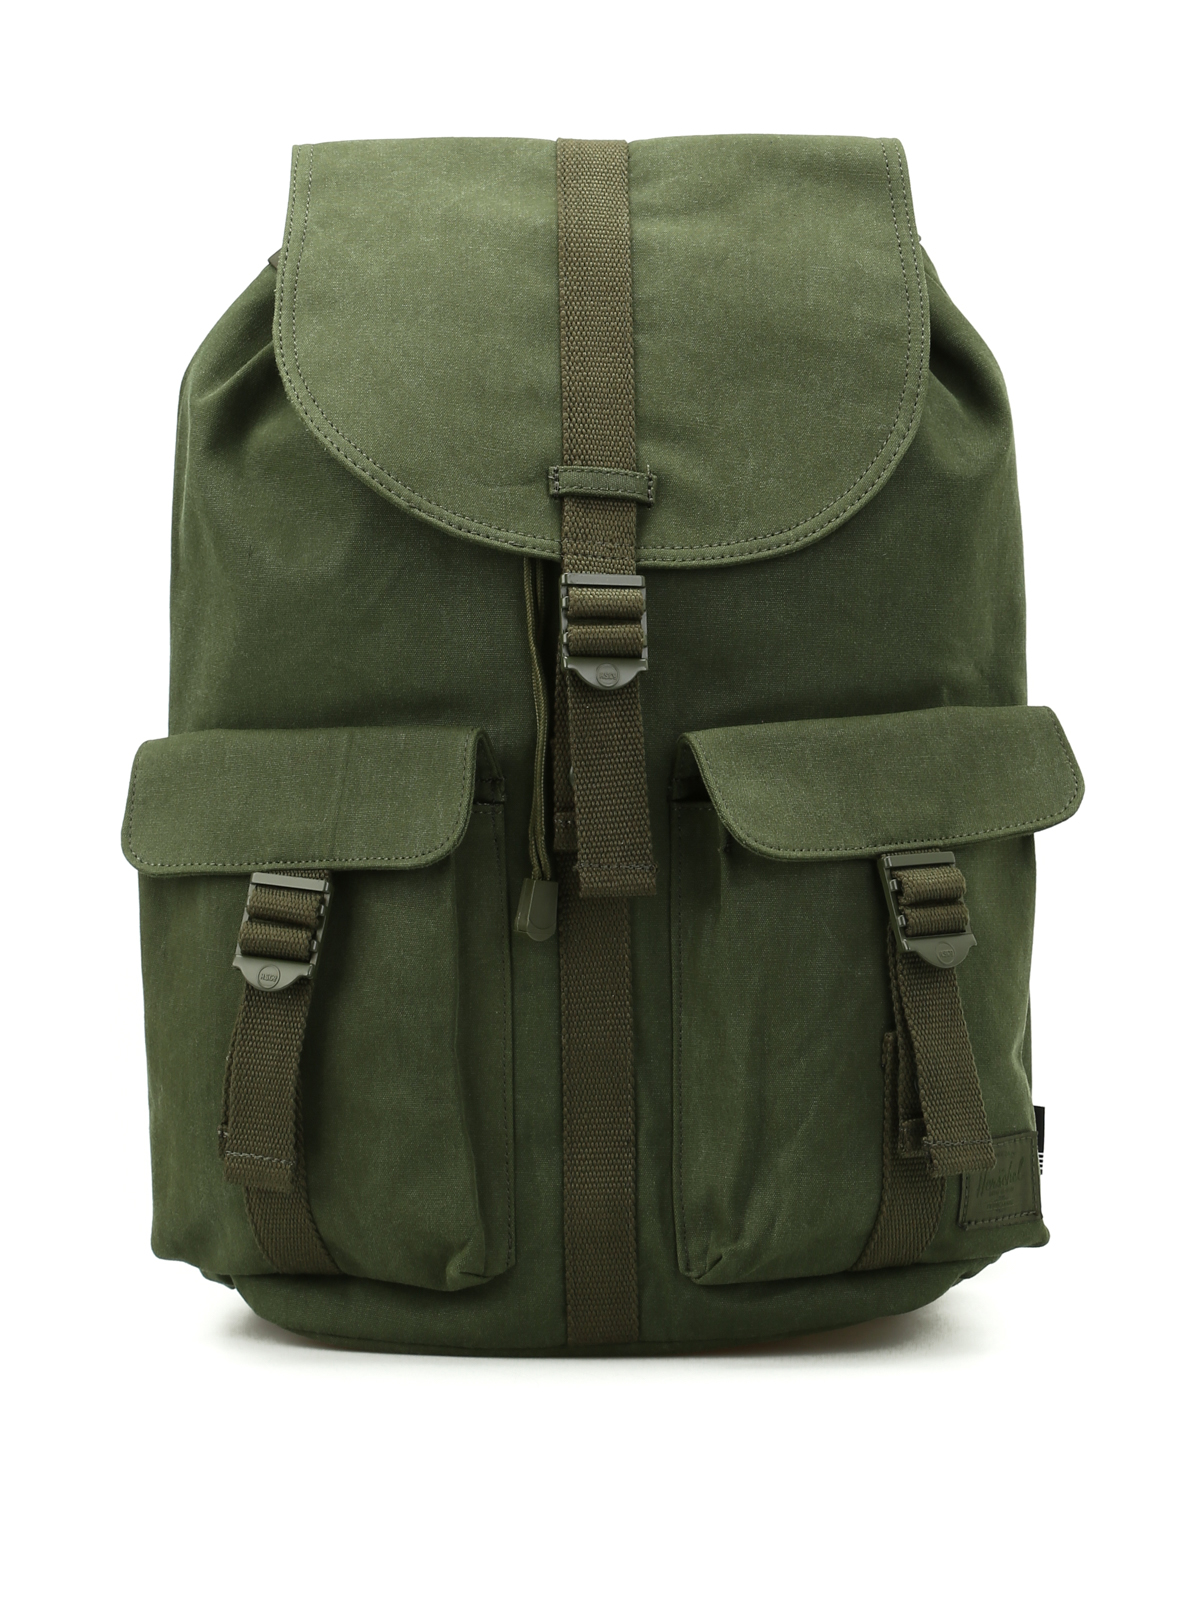 Cotton Canvas Backpack. Expand your selfie experience with the front-facing degree wide angle lens and get the bigger picture. Record smoother, clearer videos. Local Heroes Transparent Heart Sweatshirt be tru to yer feelings. $ In stock. Report Abuse. Report an abuse for product Cotton Canvas Backpack.